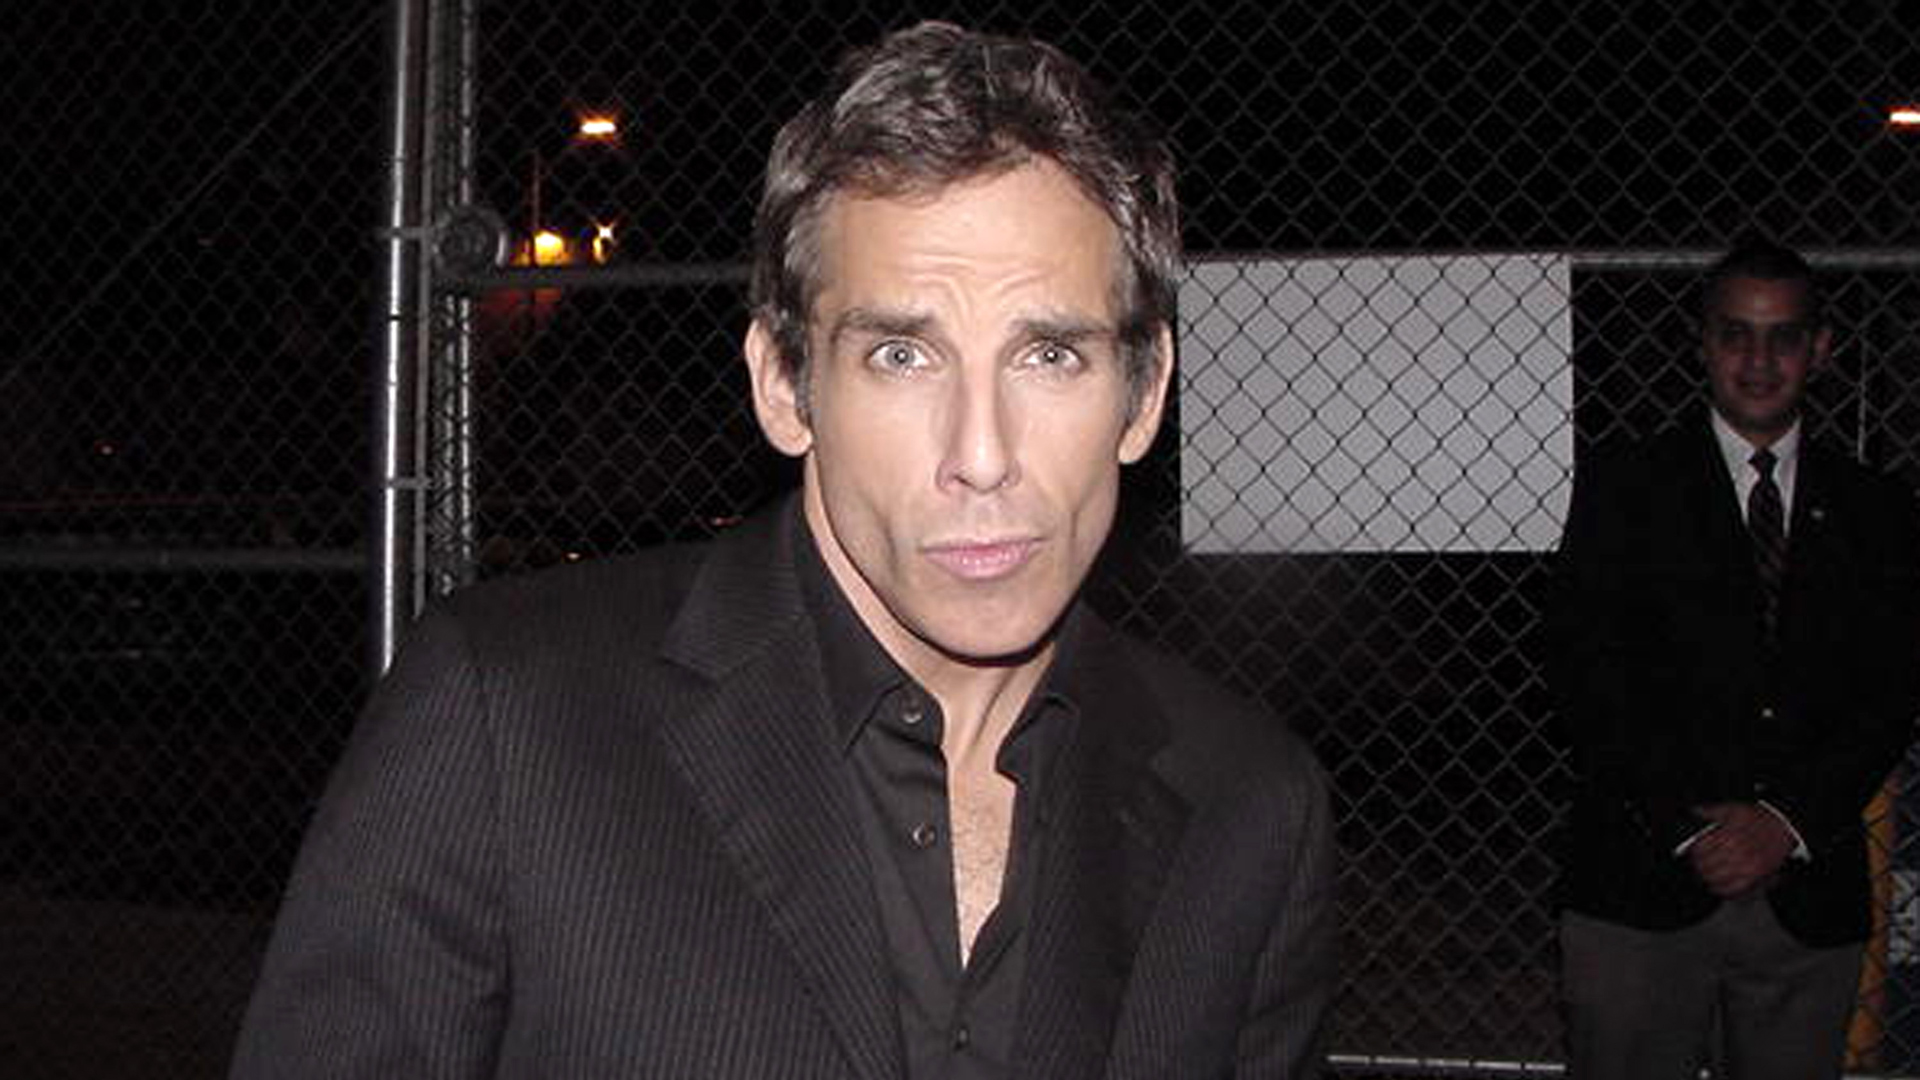 Ben Stiller striking his